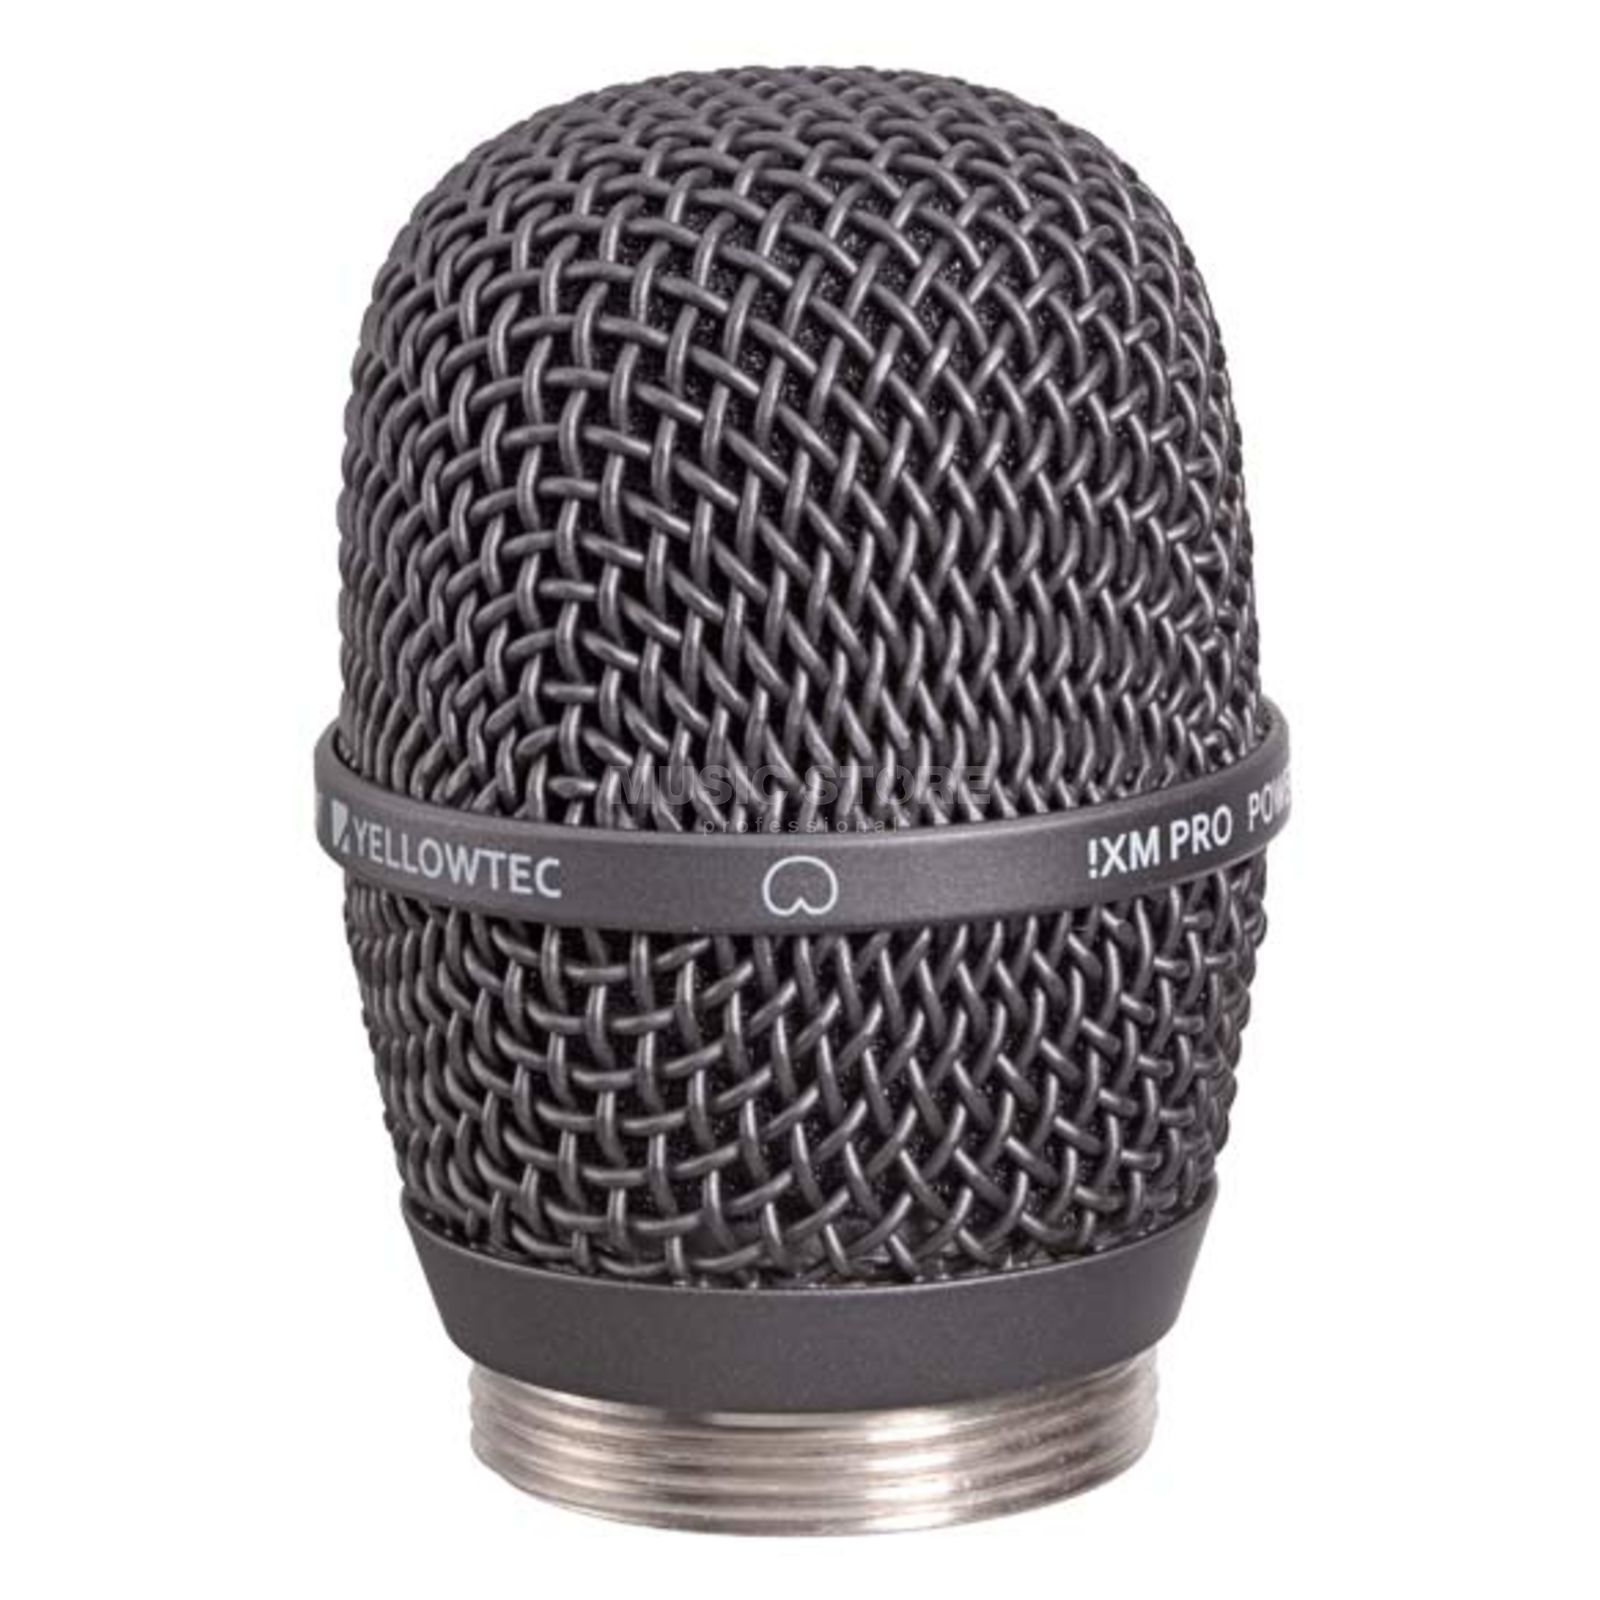 Yellowtec Pro Head for iXm Microphones Capsule, Dynamic Cardioid Produktbillede